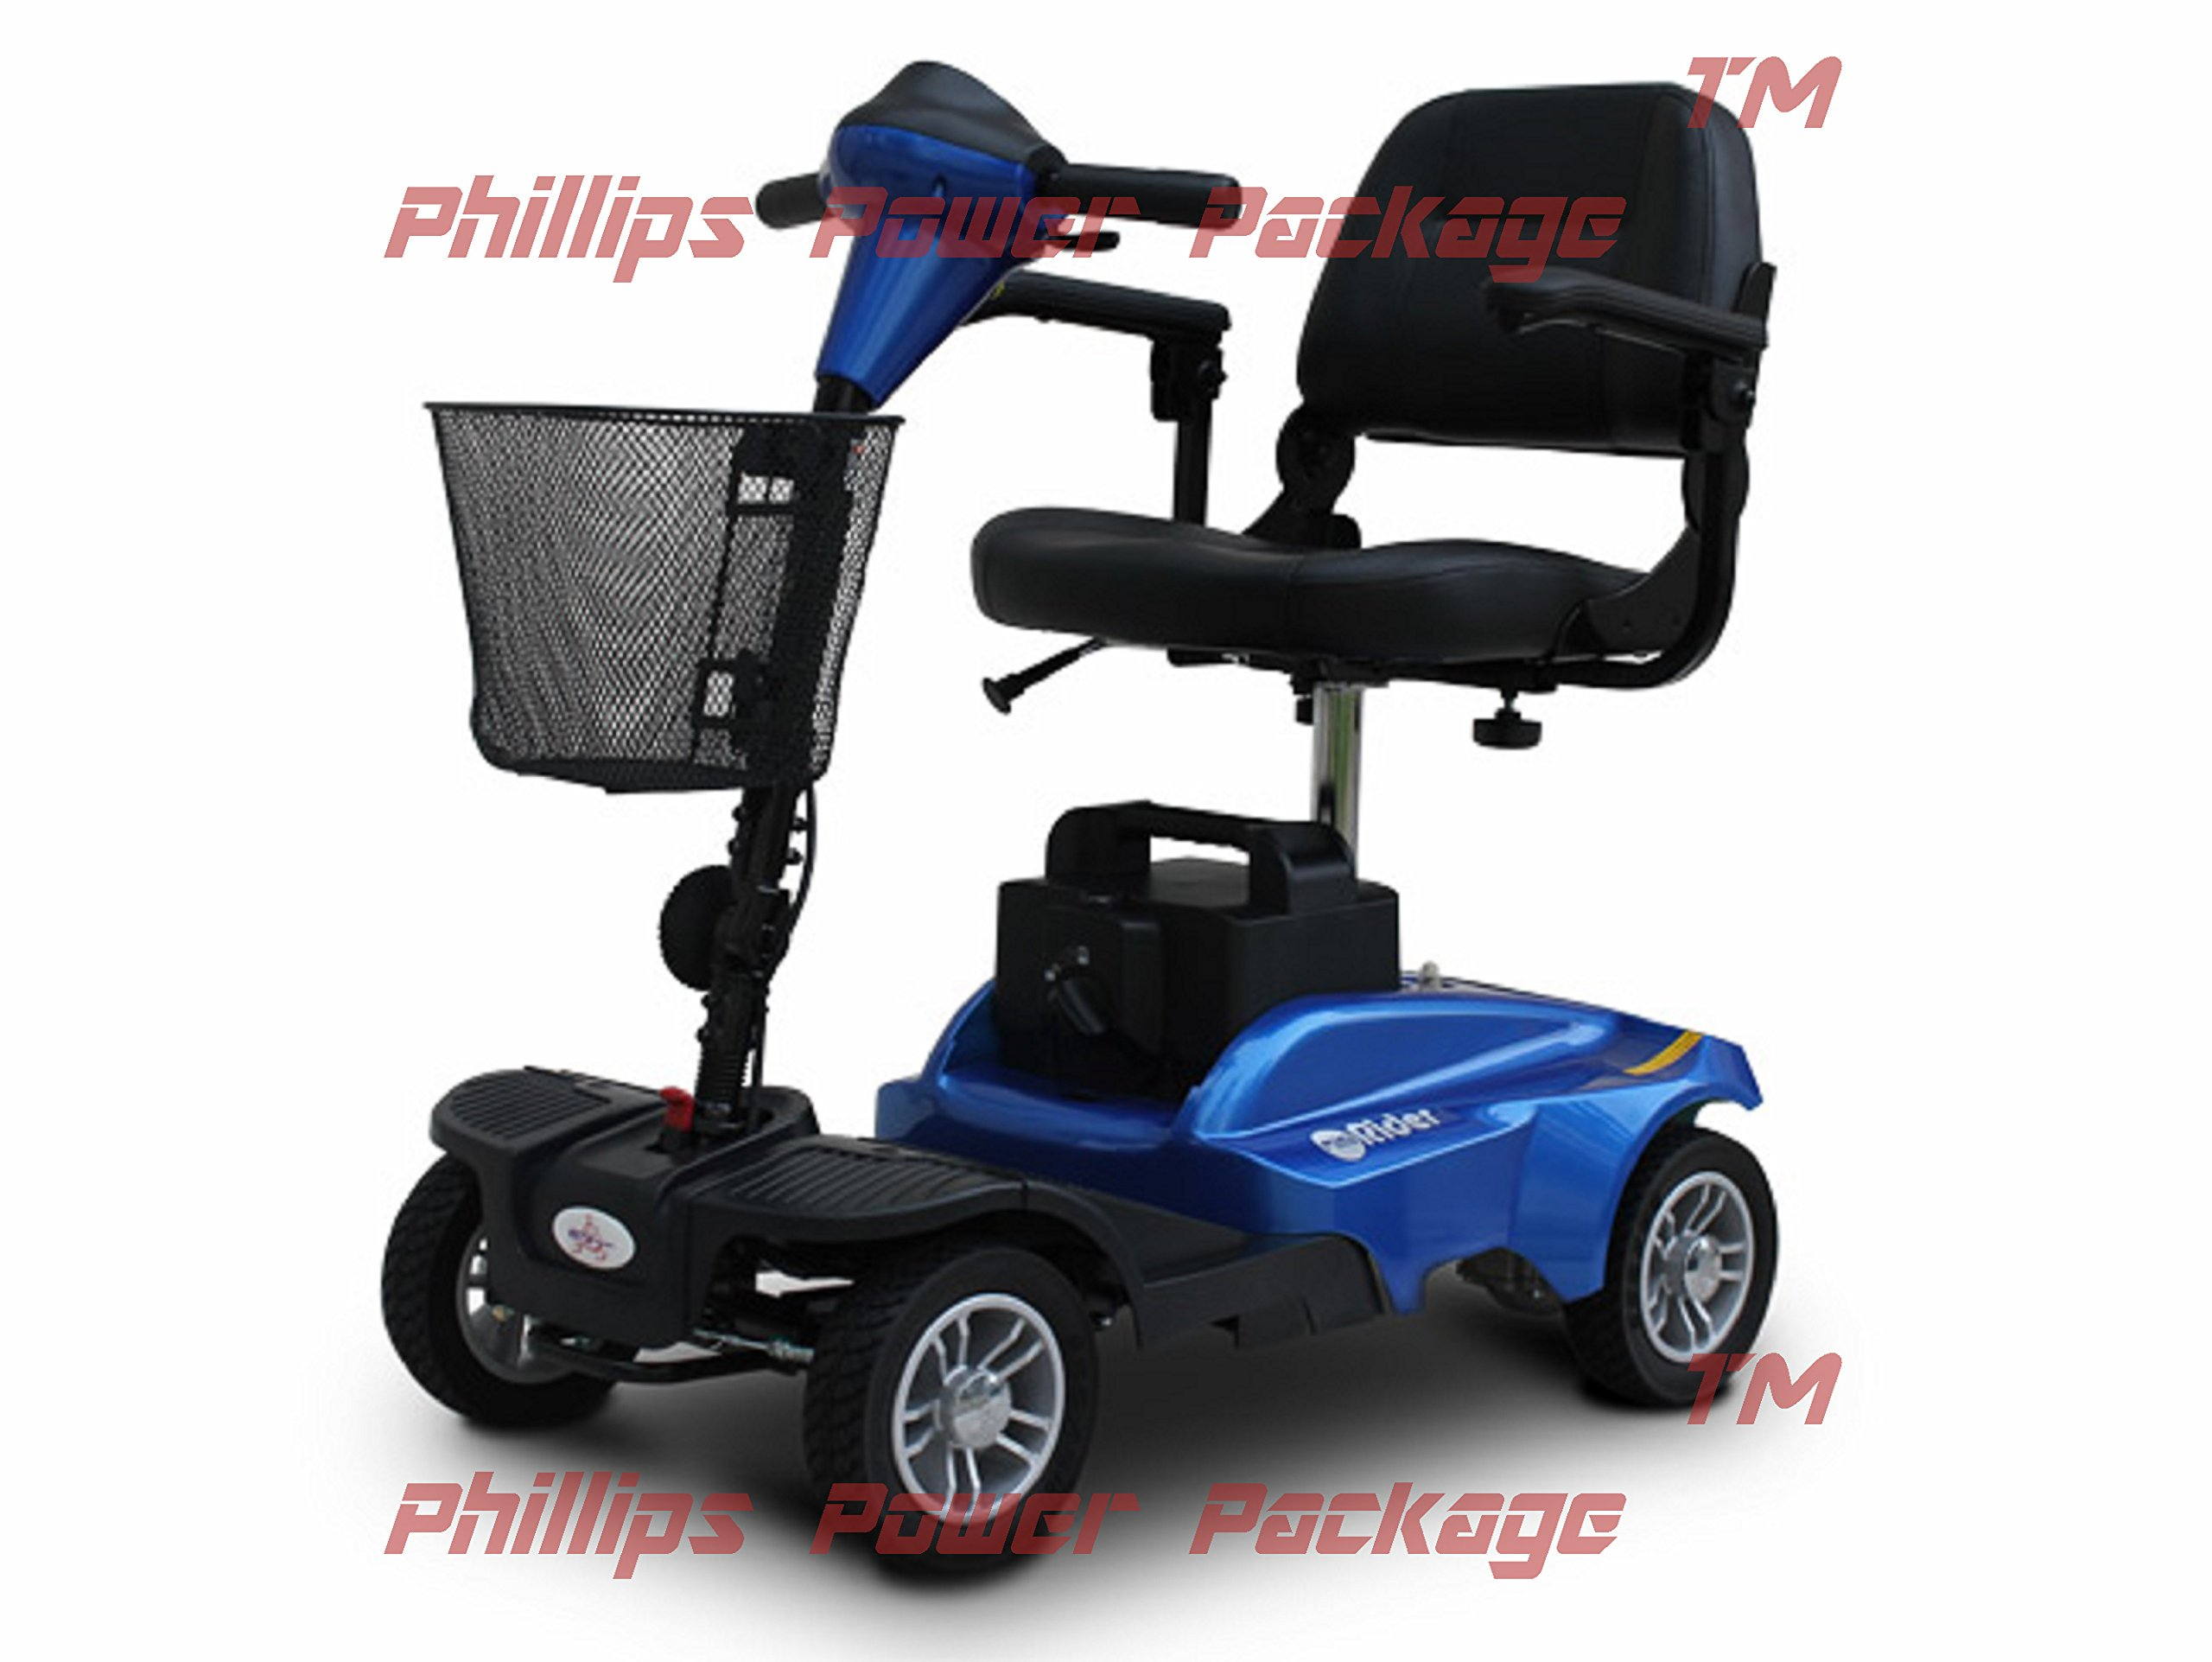 EV Rider - Mini Rider Compact Scooter - 4-Wheel - Metallic Blue - with PHILLIPS IN HOME SERVICE POWER PACKAGE (1 year) - UP TO A $500 VALUE